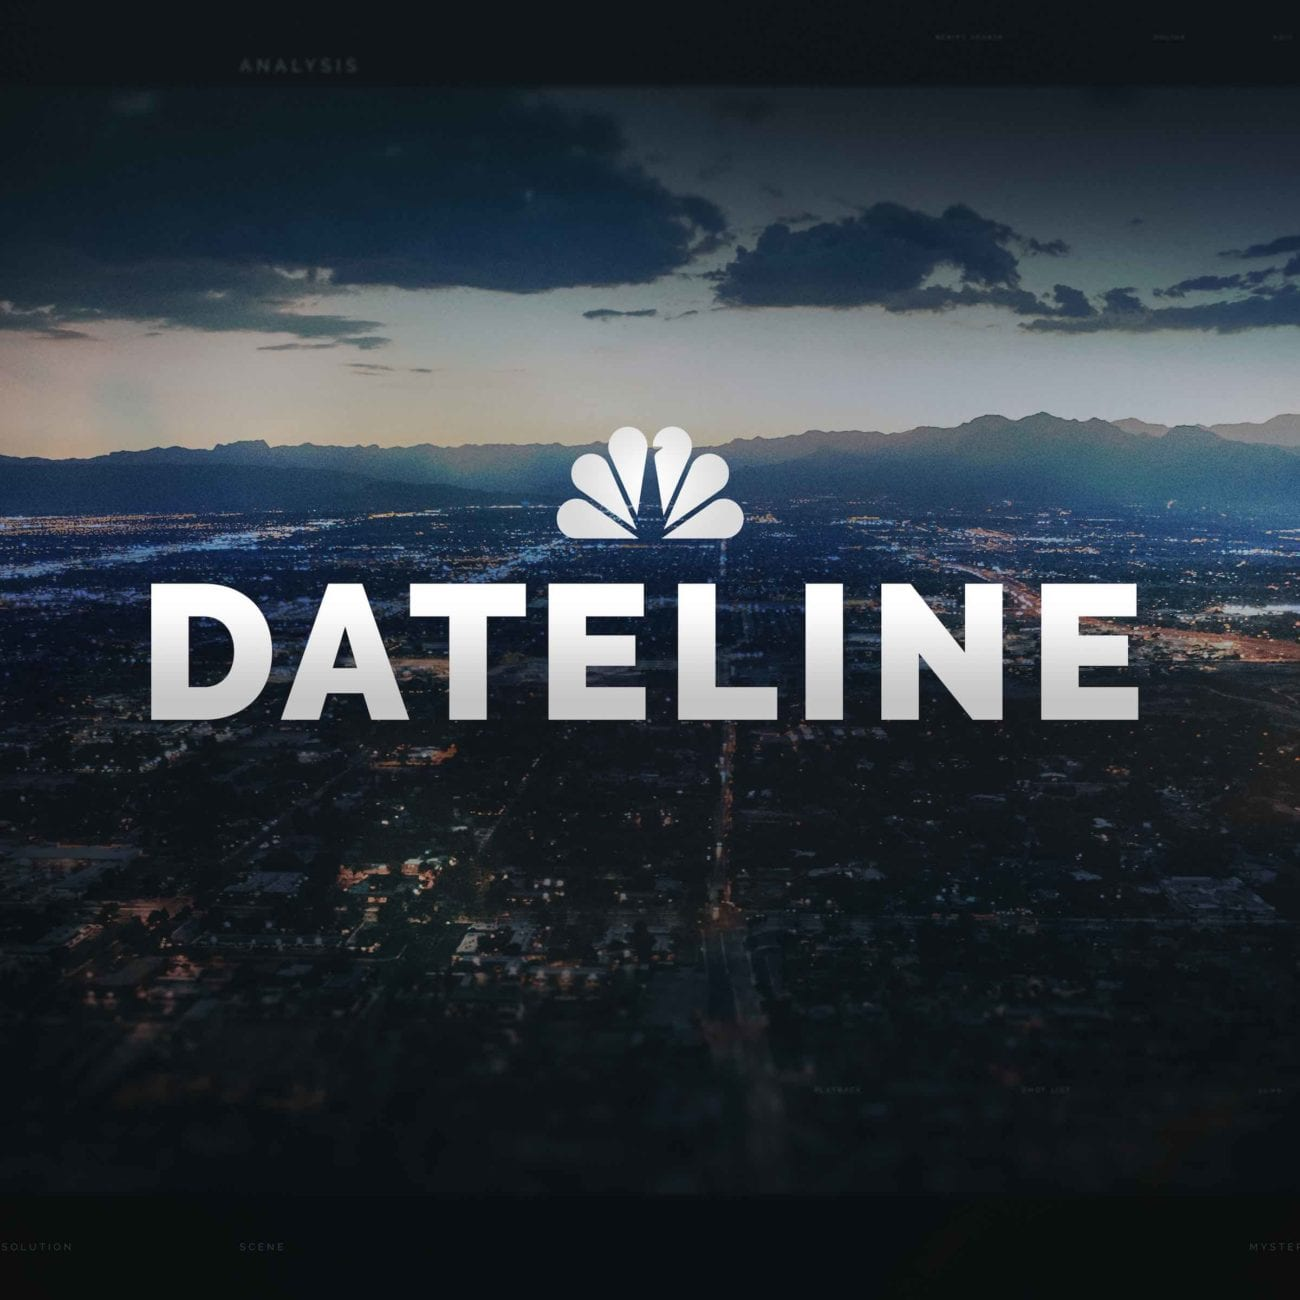 'Dateline NBC' showcases some of the best and most unexpected true crime stories. Here are 10 of the messiest 'Dateline' episodes ever.